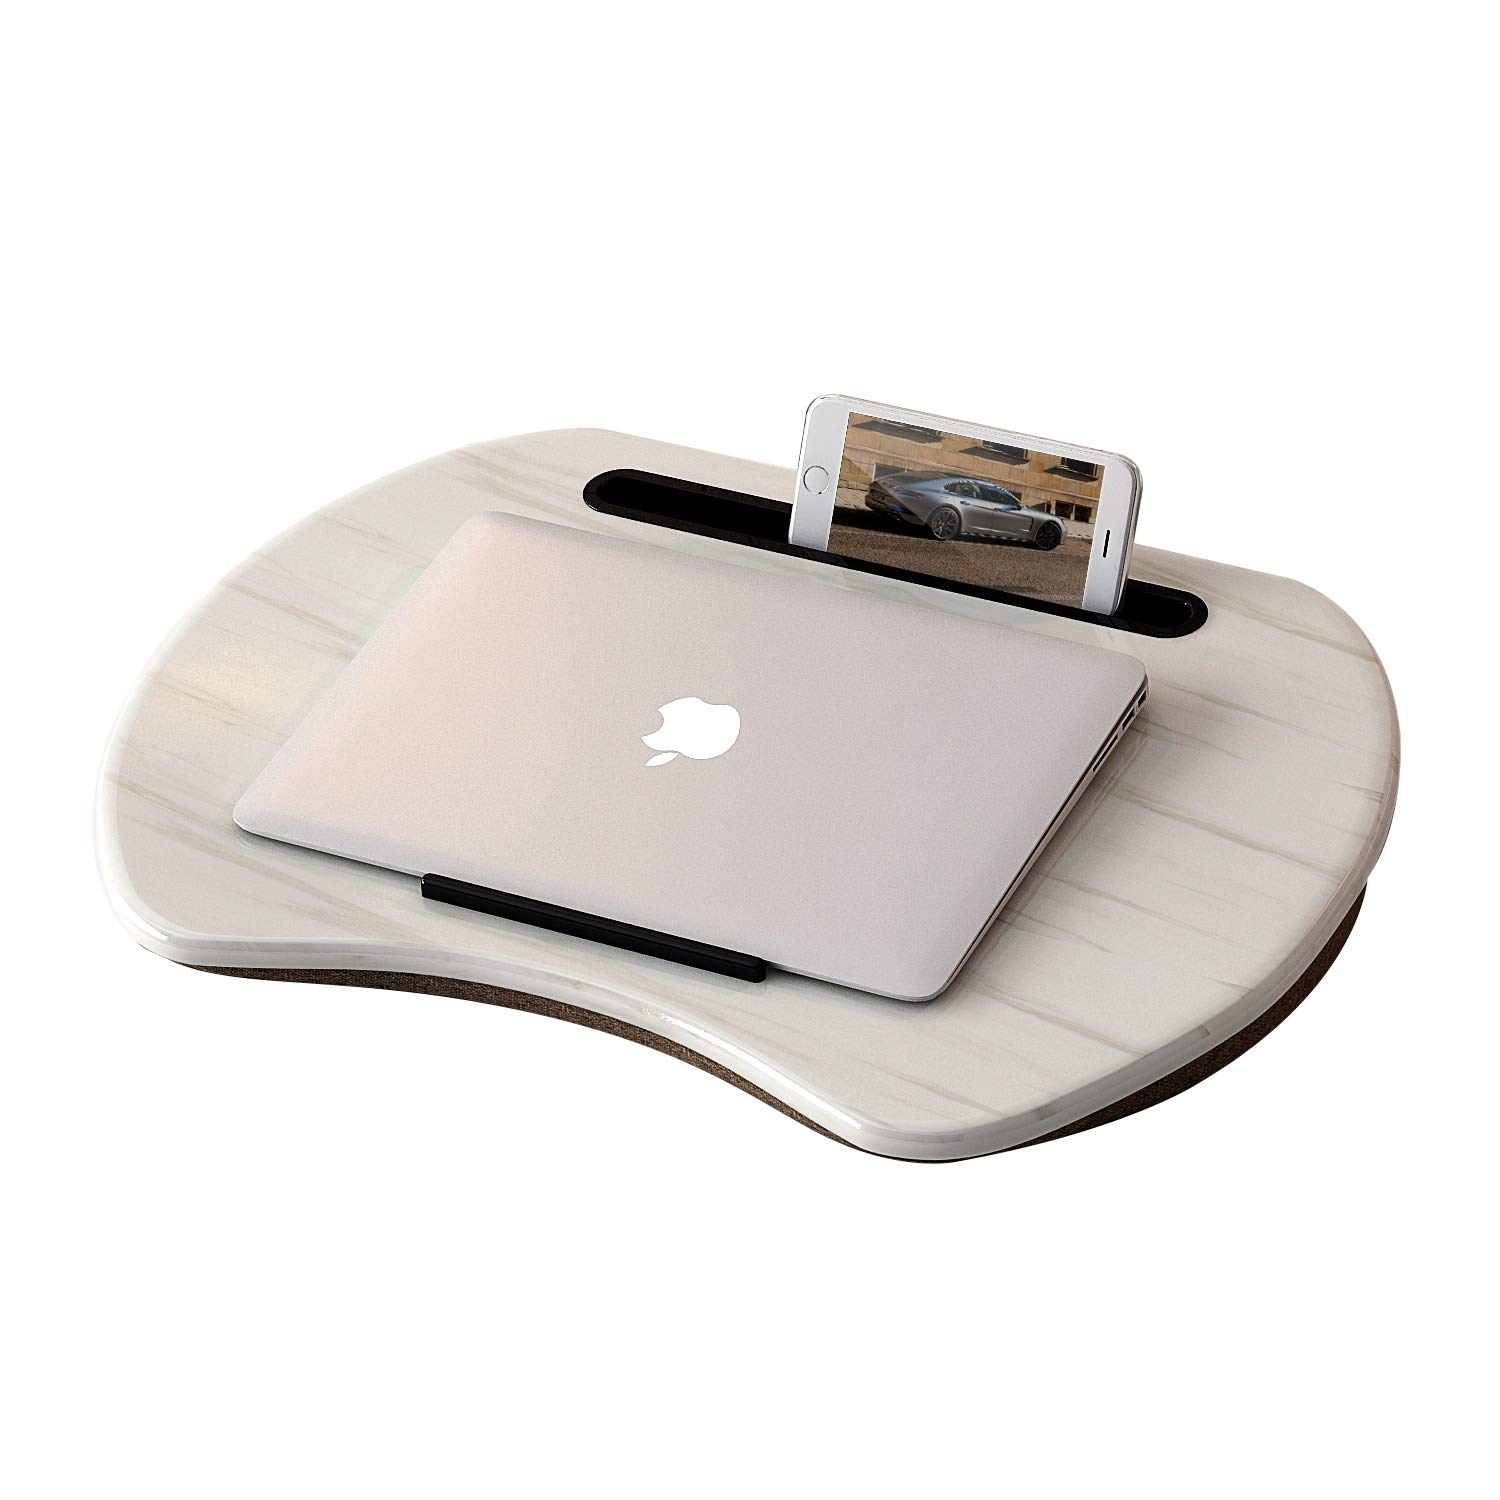 HOME BI Lap Desk for Laptop, Portable Laptop Table with Phone Tablet Holder, Fits up to 15'' Laptop and 9.7'' Tablet (White)